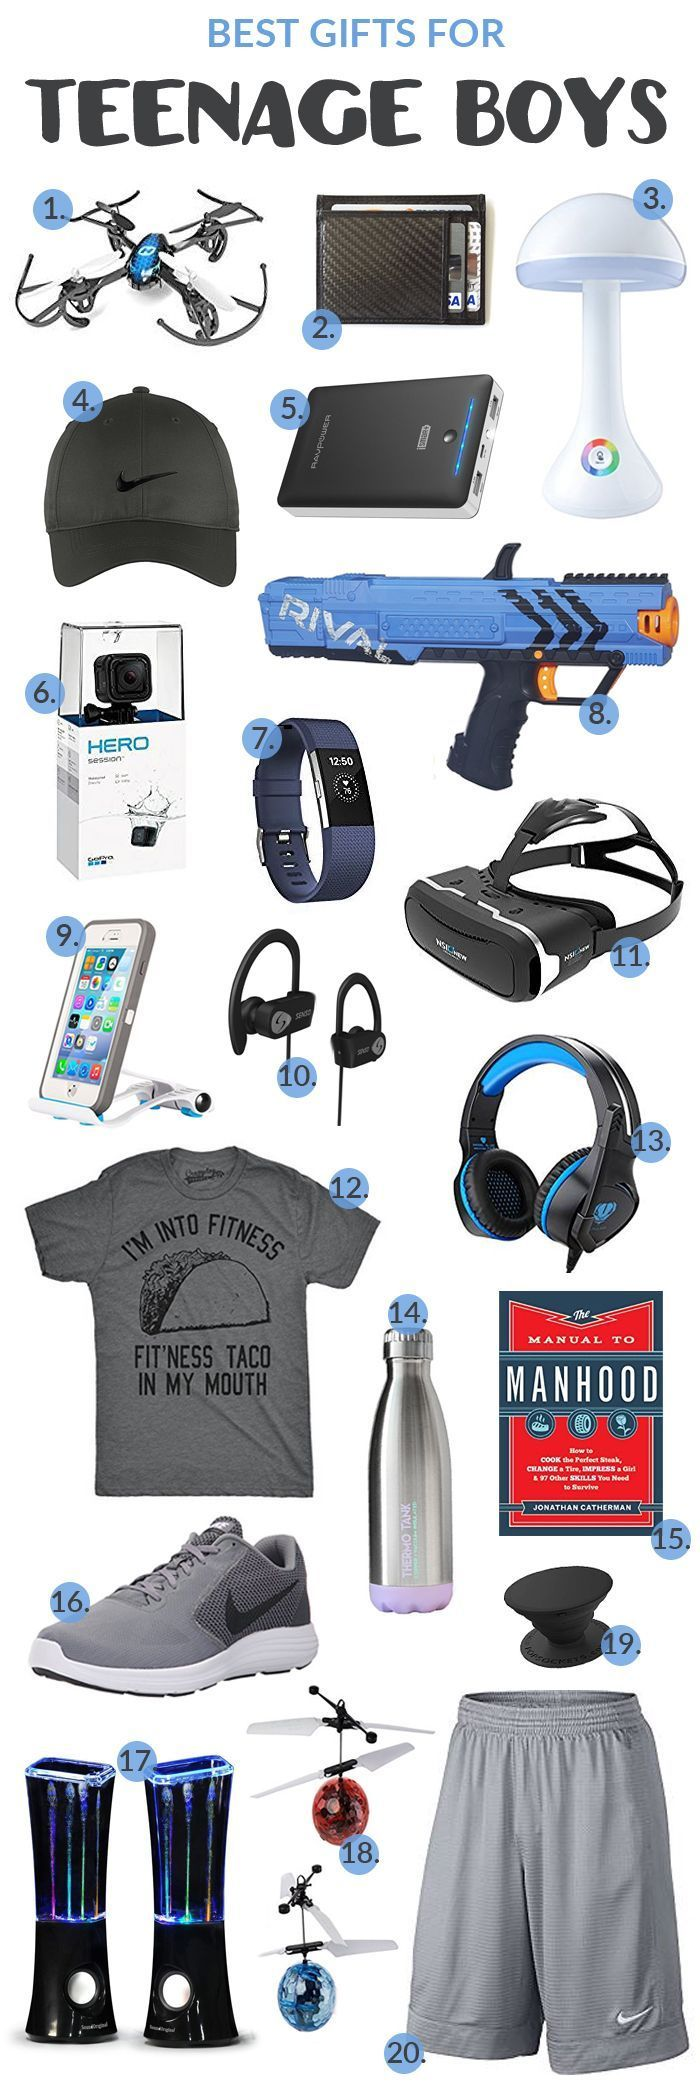 Gift Ideas For Him Teenage Boys Here Are Some Great Gifts Your Boyfriend Brother Uncle Or Dad Even